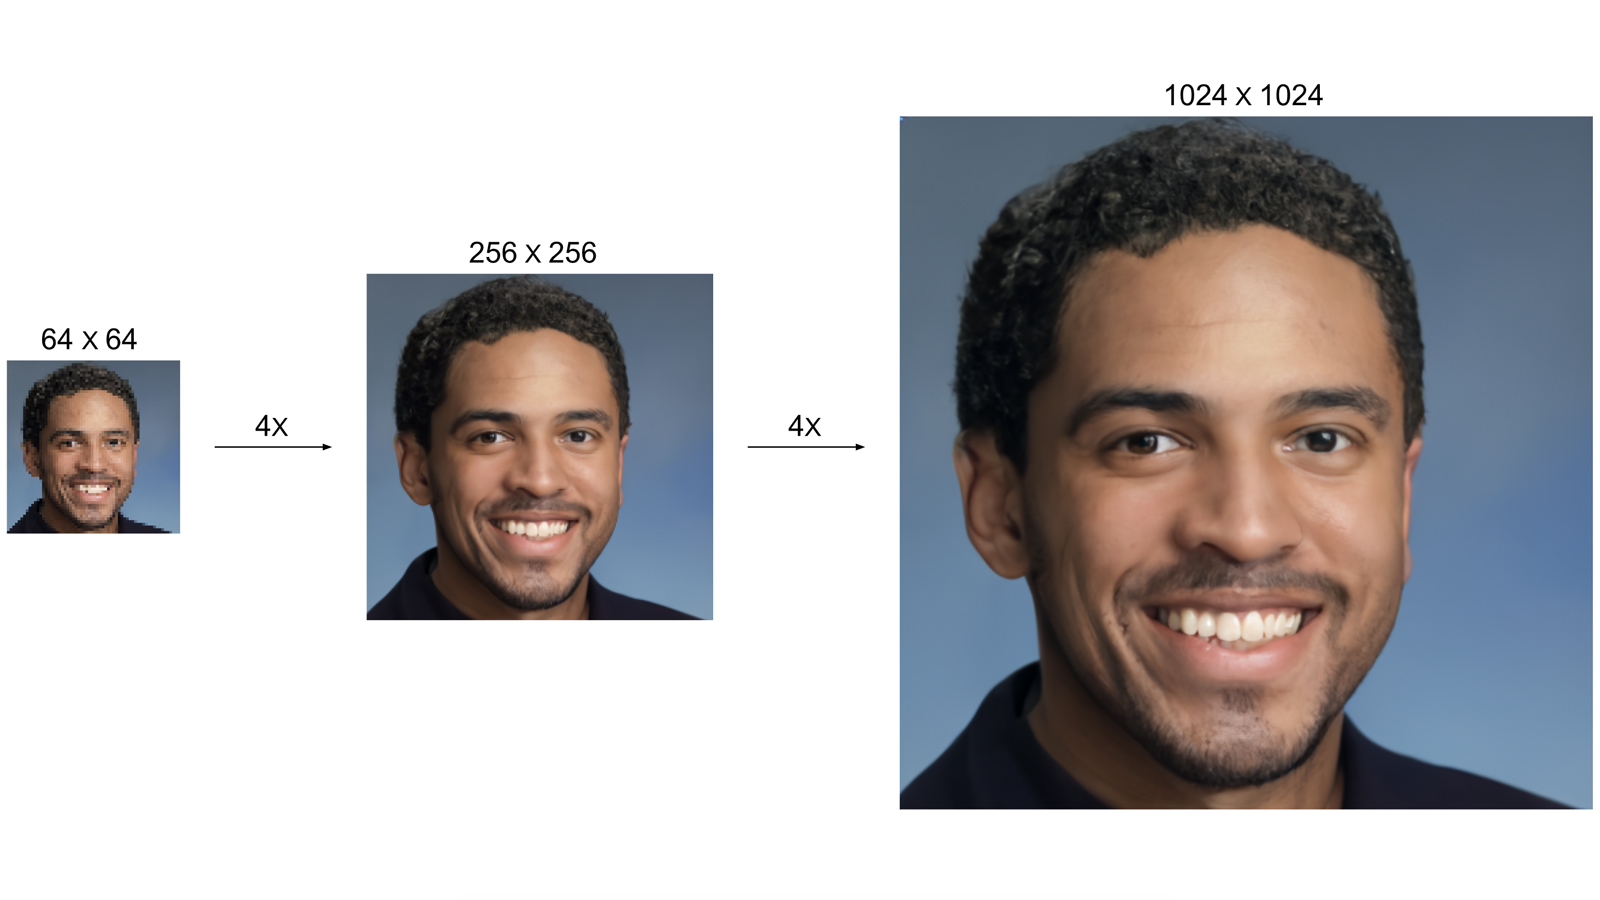 Google AI Turns Low-Res Images To High-Res - CDM - Cascaded Diffusion Model (2)